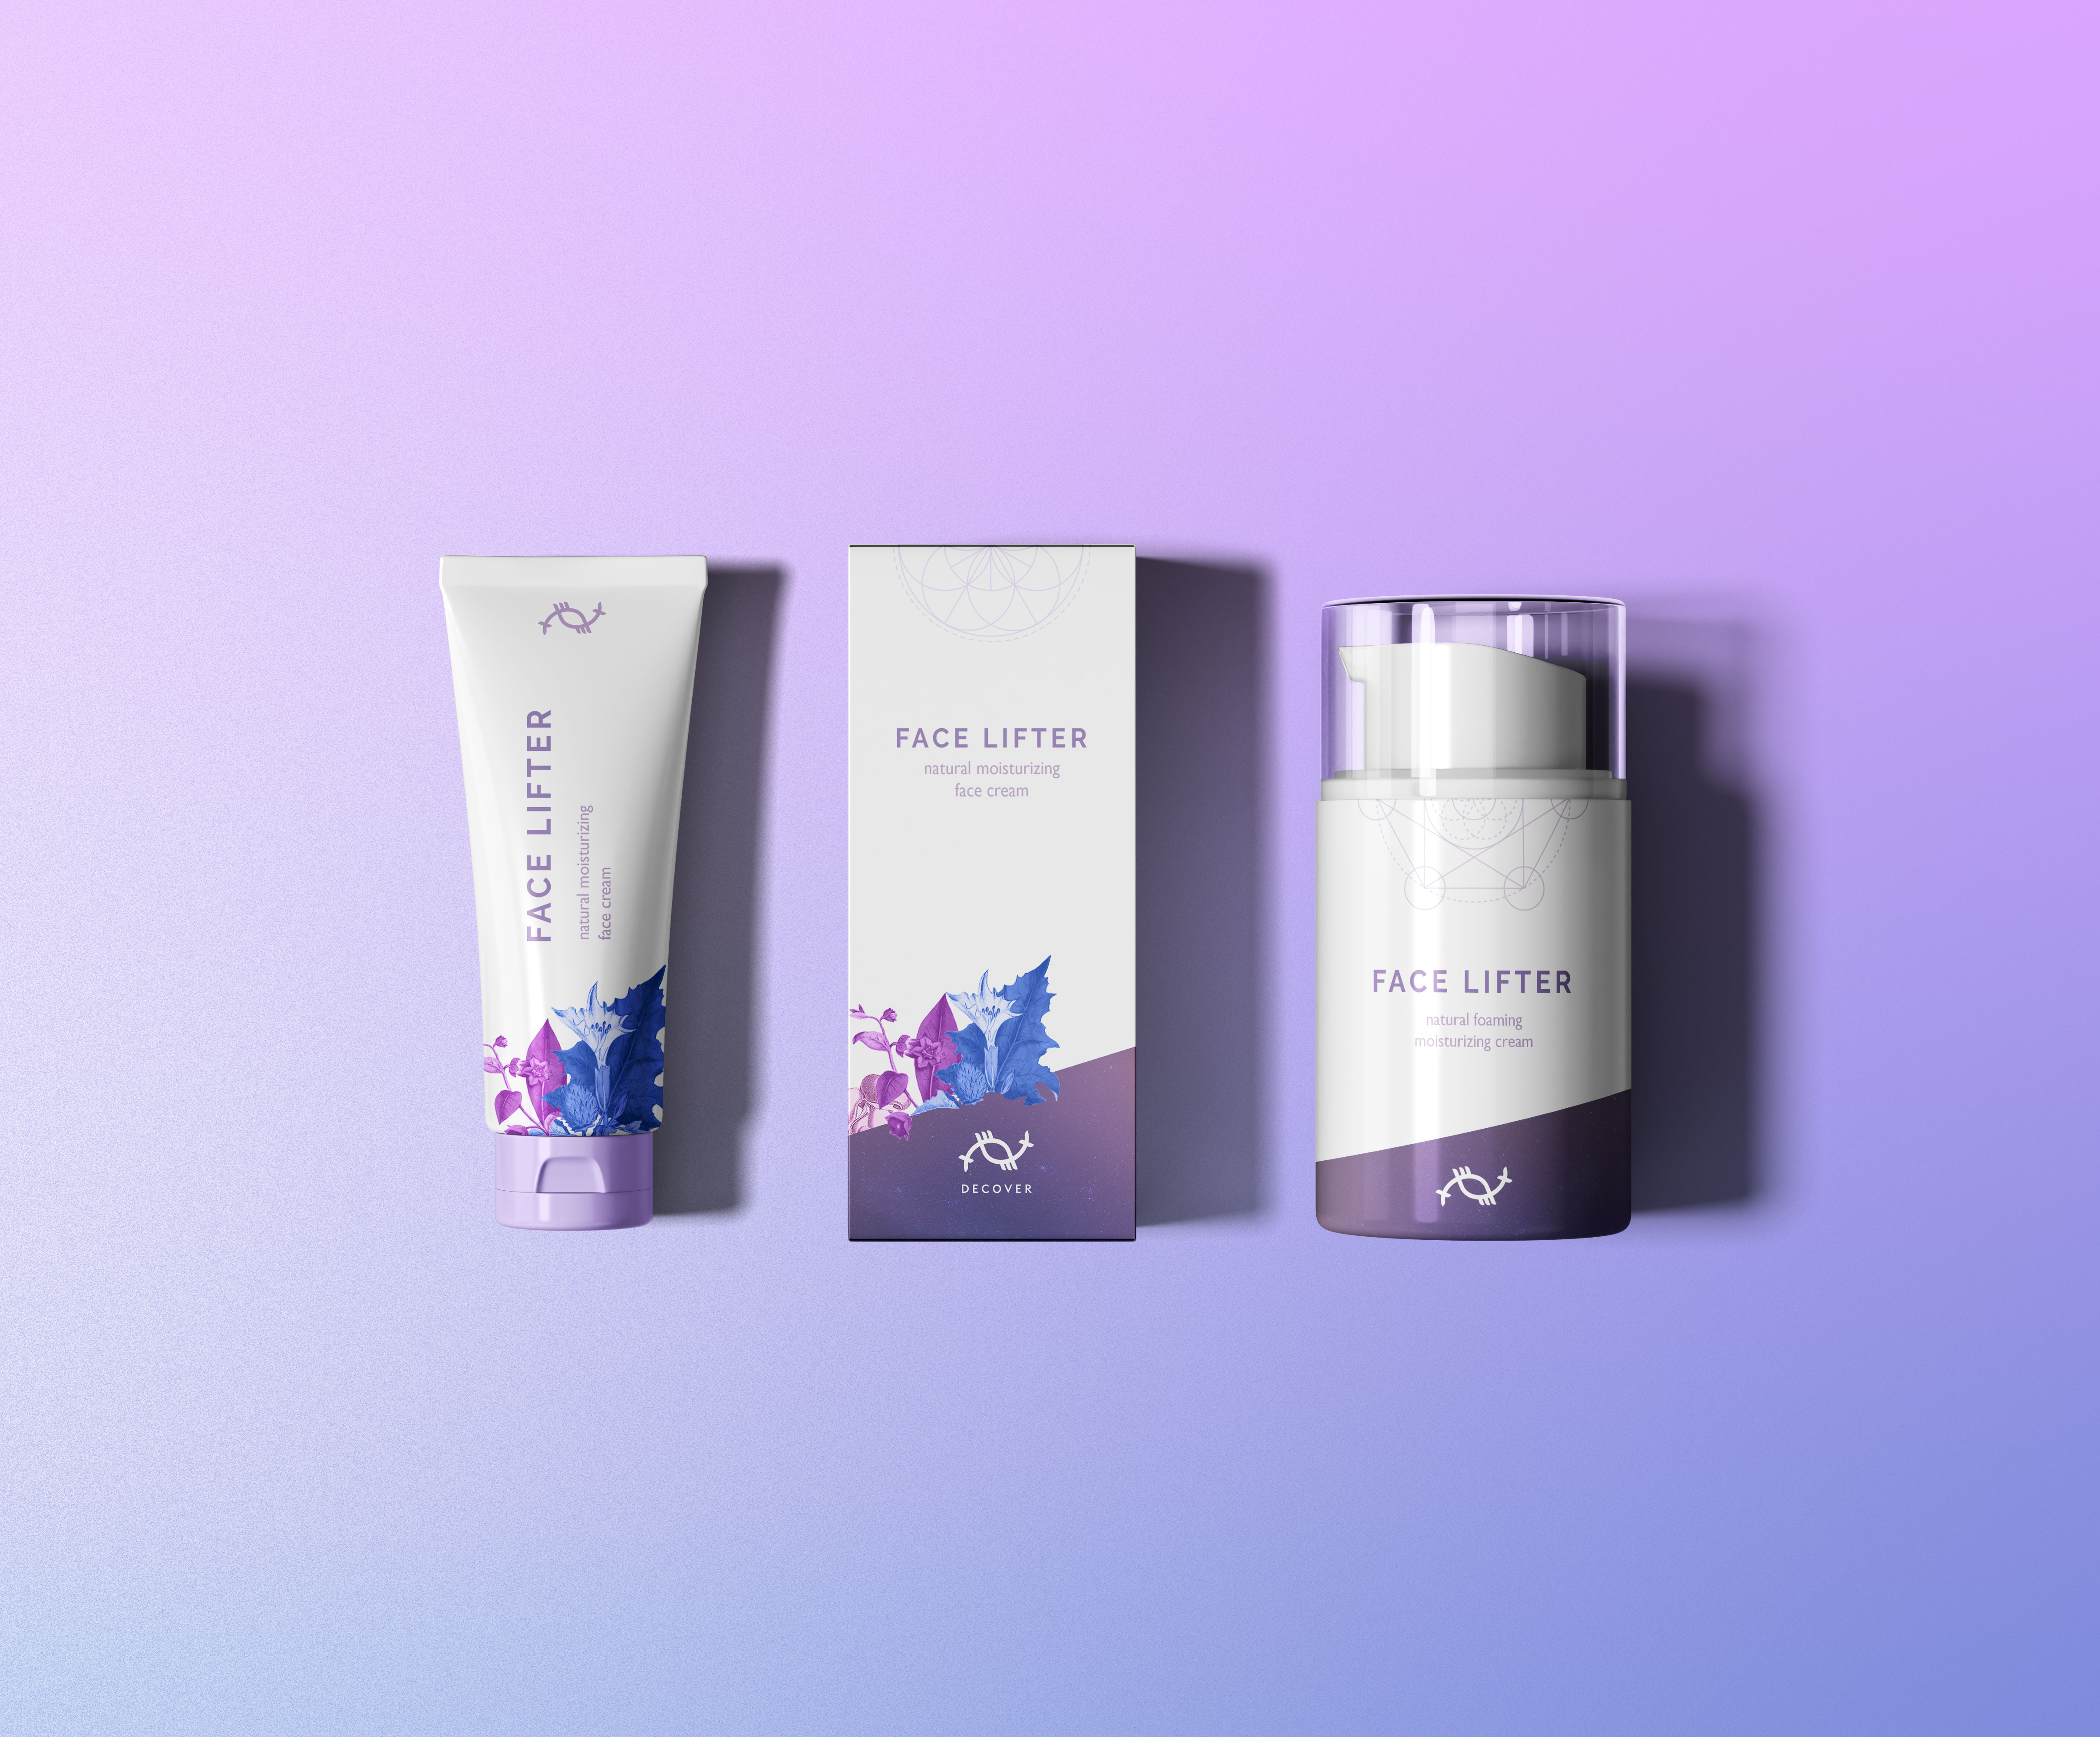 Facelifter Packaging for Decover